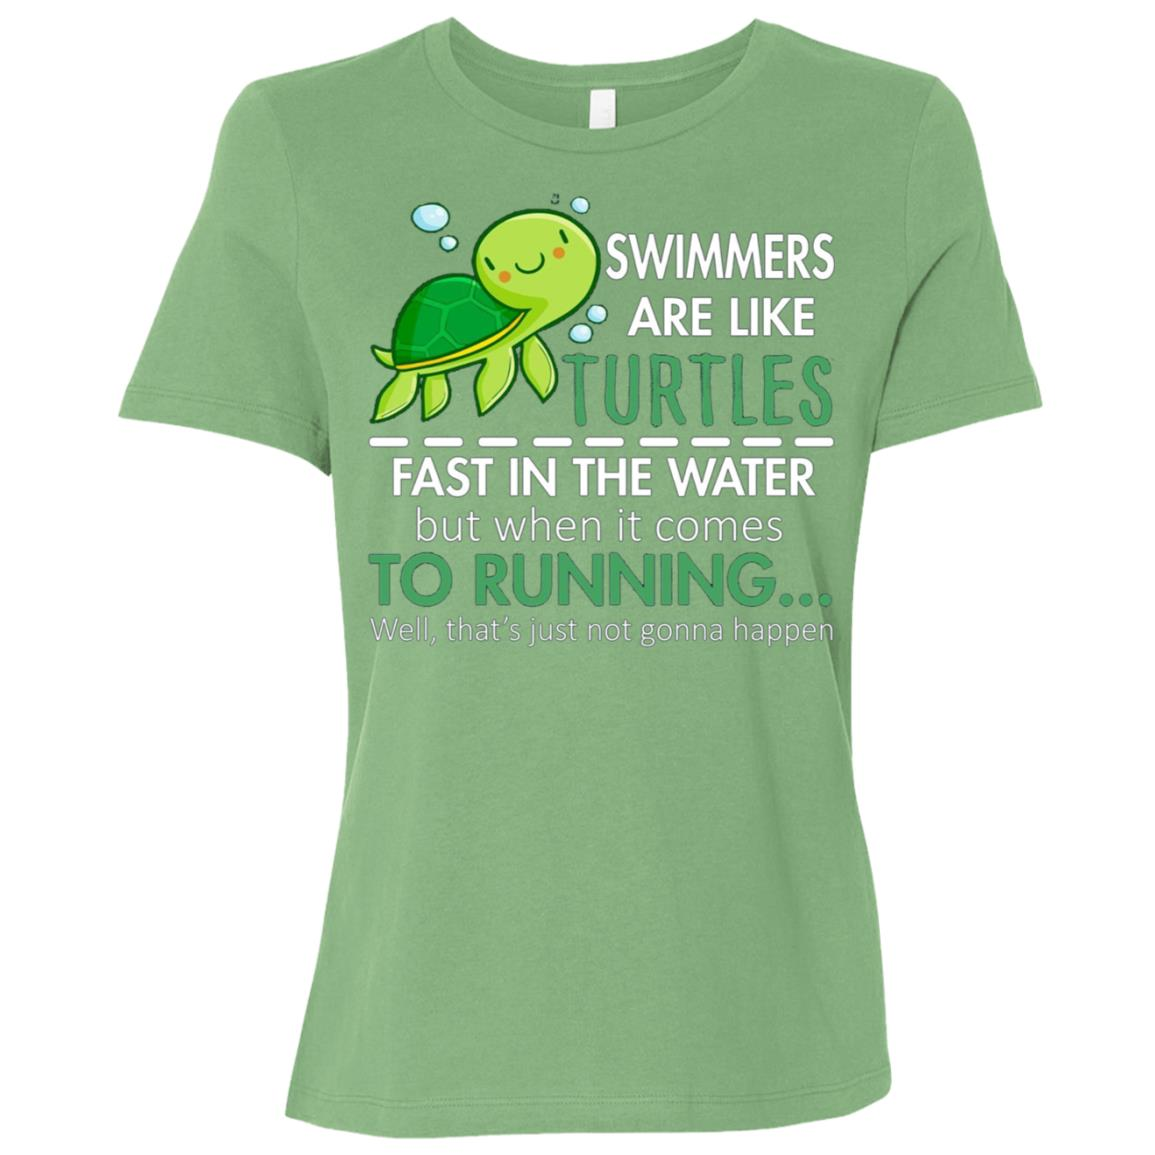 Swimmers Are Like Turtles Fast In The Water Women Short Sleeve T-Shirt